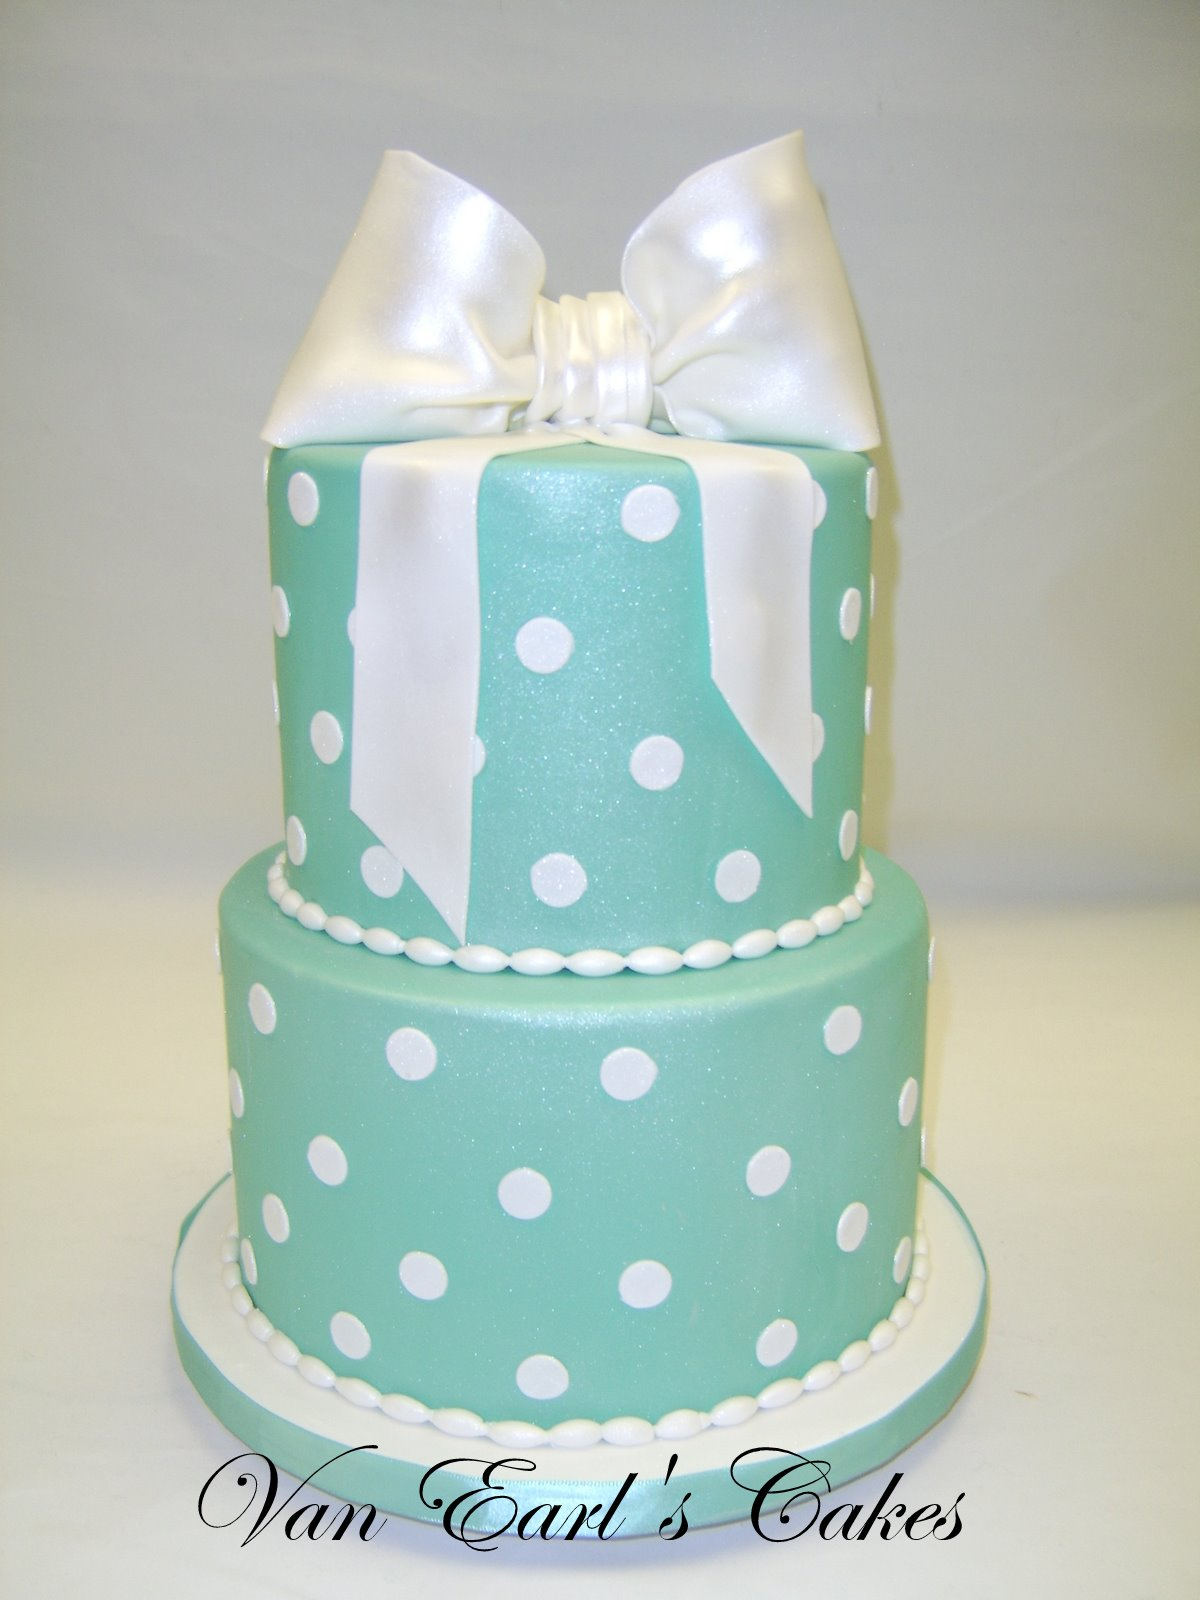 Tiffany style bridal shower cake and cupcakes for friends ...  Tiffany Bridal Shower Cakes